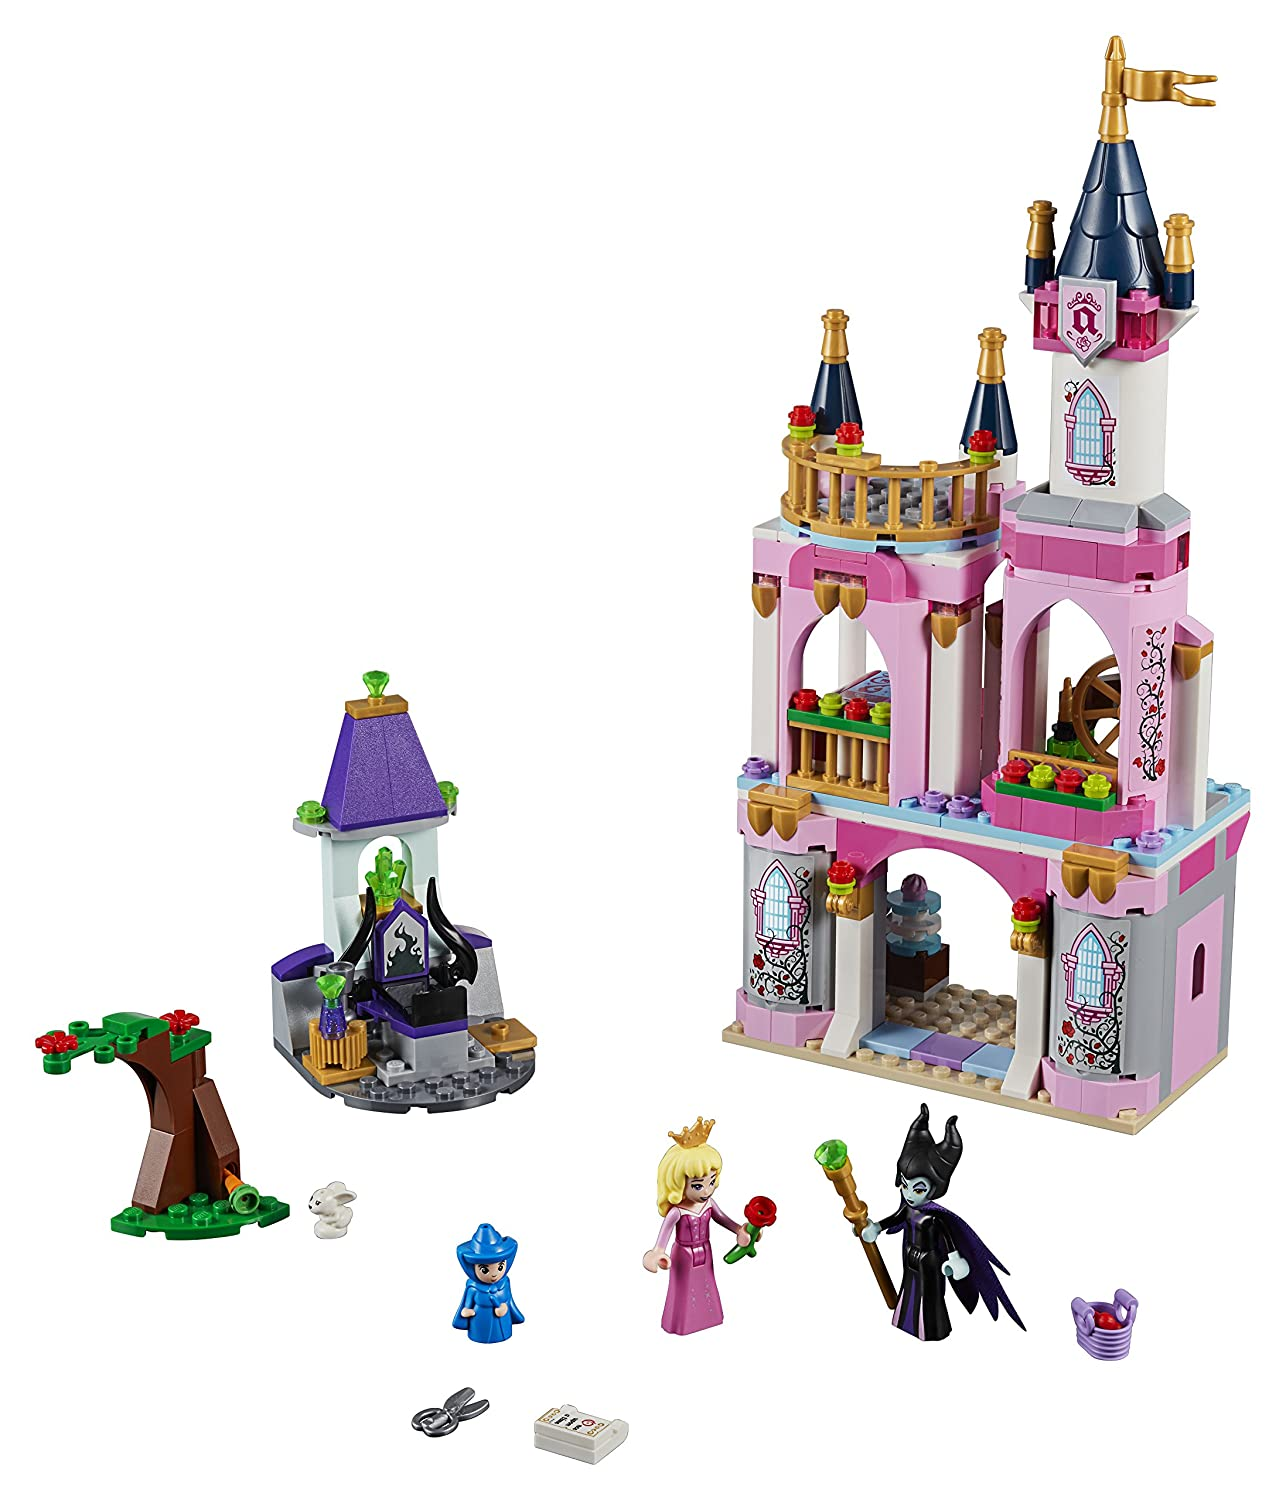 LEGO 41152 Disney PrInc.ess Sleeping Beauty's Fairytale Castle Toy with Aurora and Maleficent figures